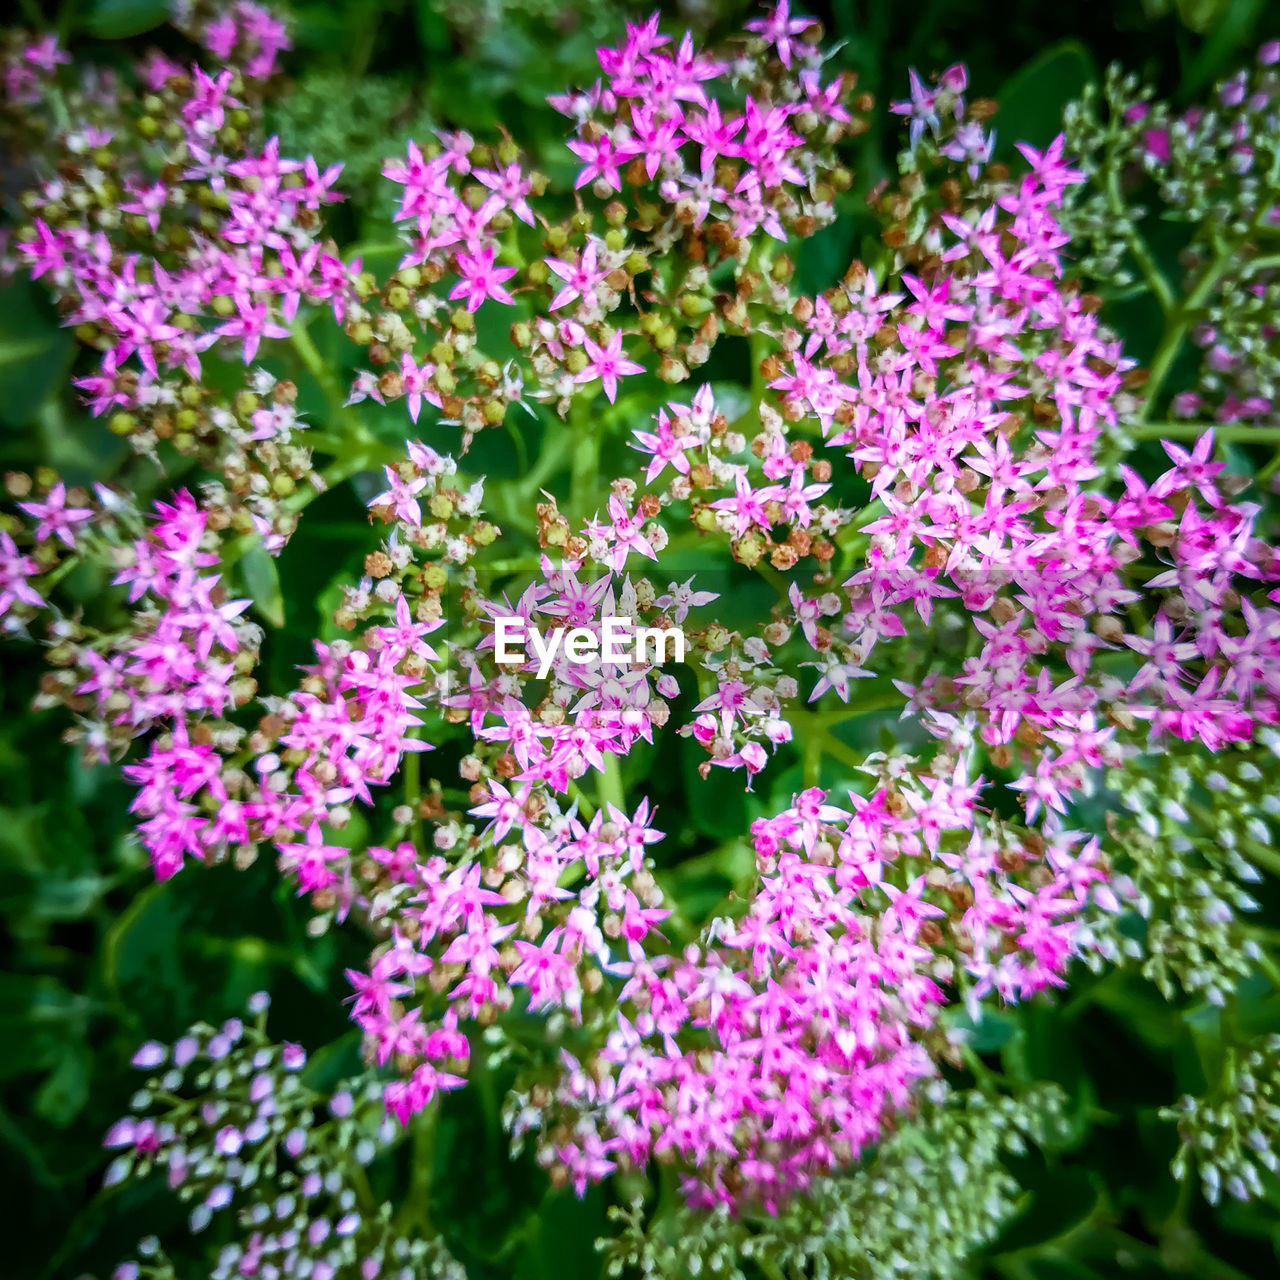 flower, beauty in nature, plant, nature, growth, fragility, no people, freshness, day, purple, petal, outdoors, pink color, blooming, lilac, flower head, close-up